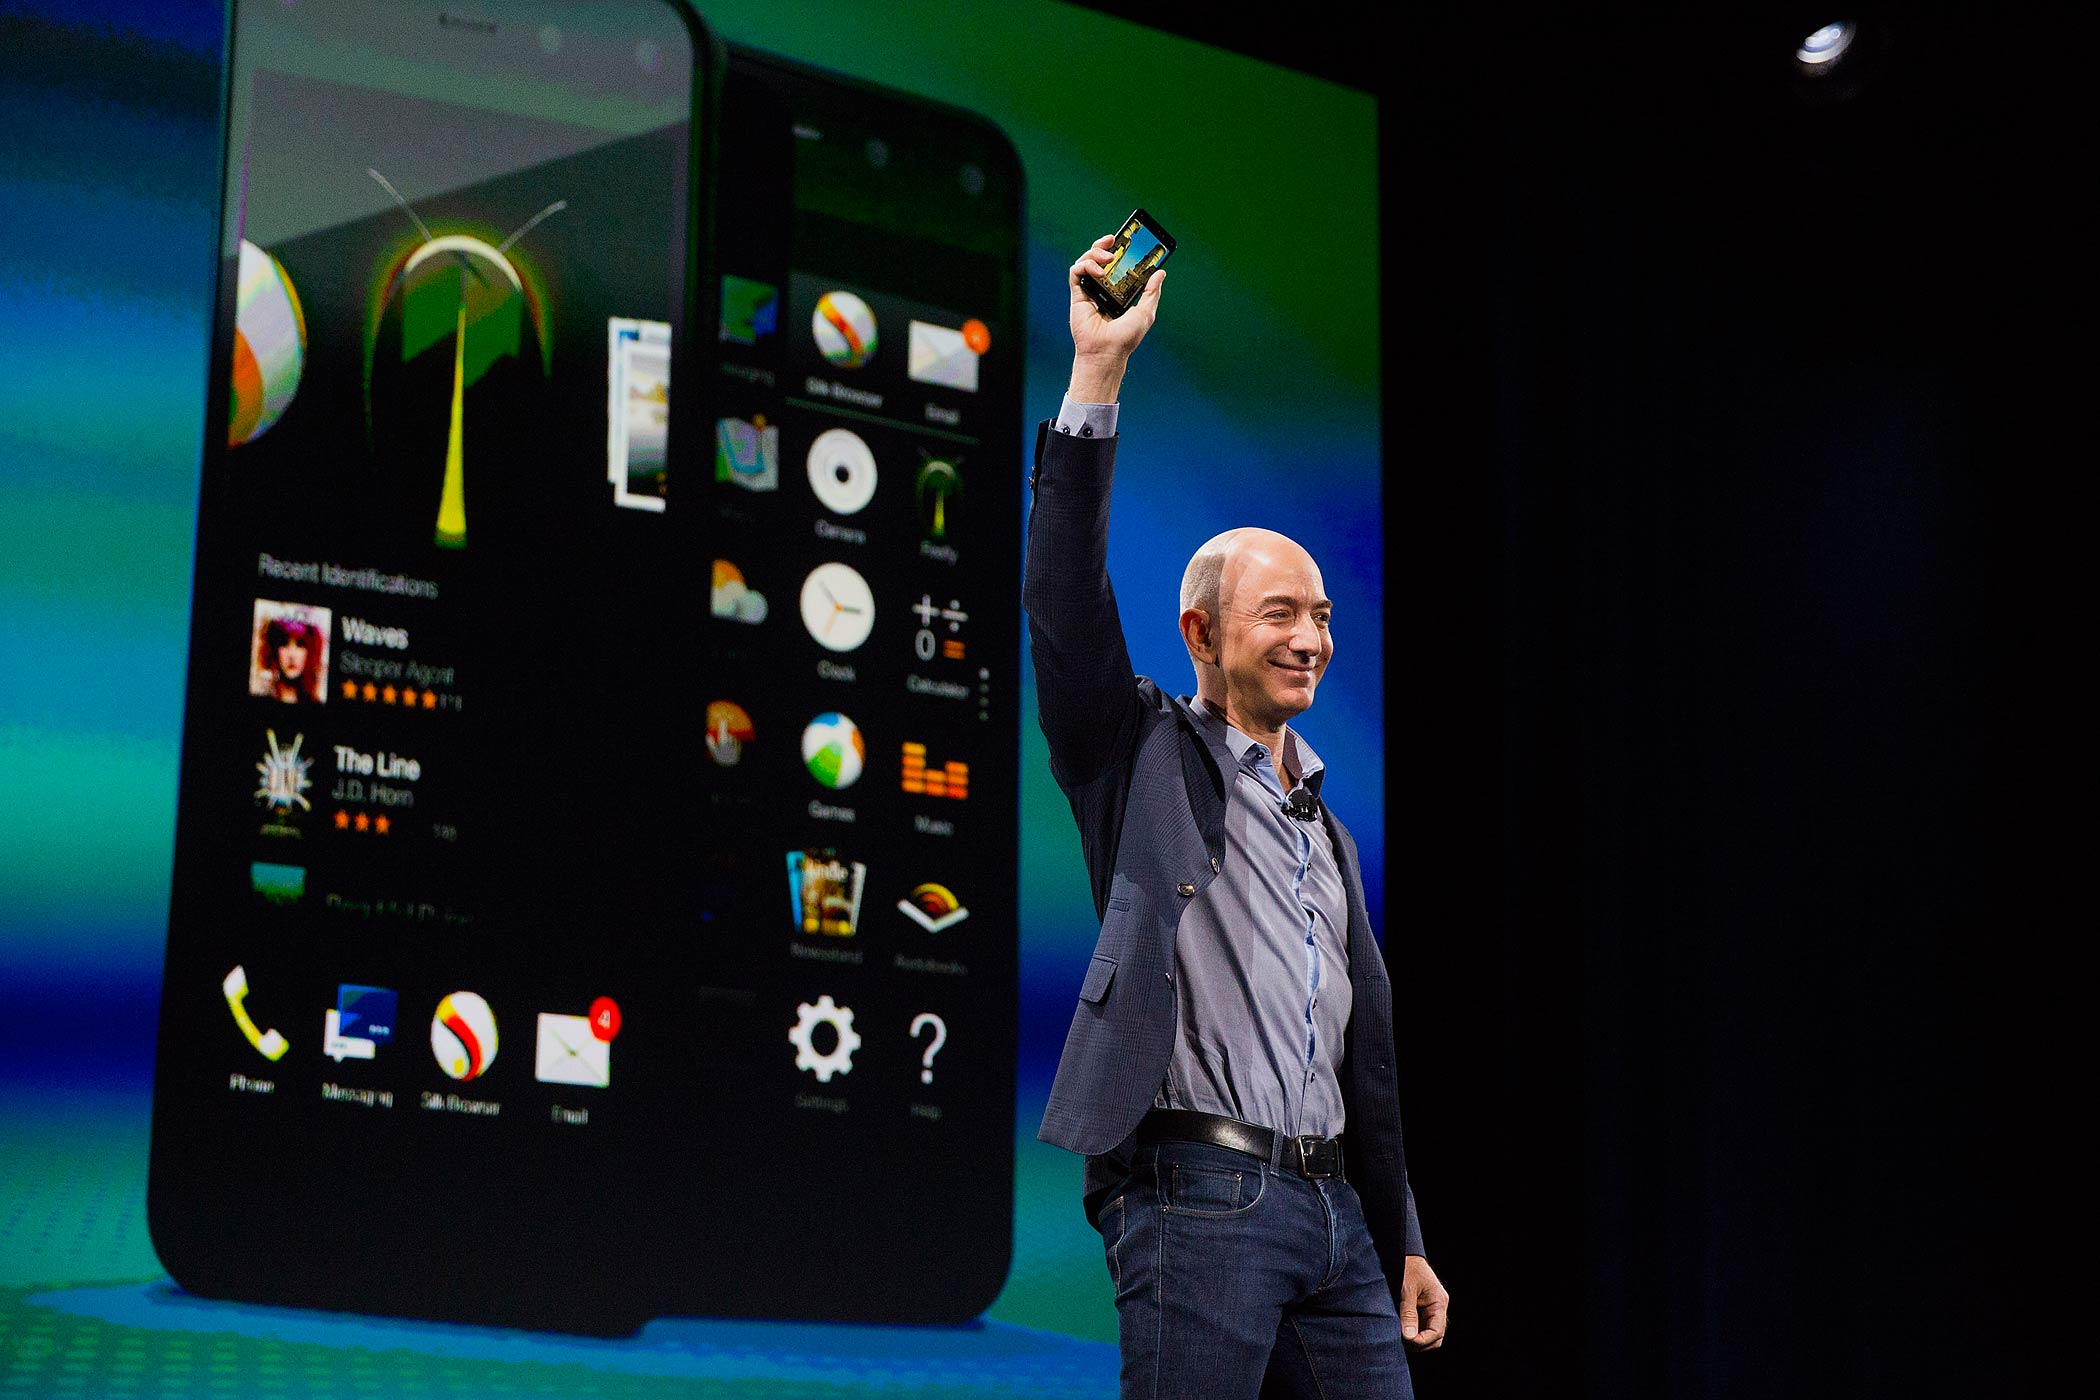 Jeff Bezos, chief executive officer of Amazon, unveils the Fire Phone during an event at Fremont Studios in Seattle, Washington, U.S., on June 18, 2014.